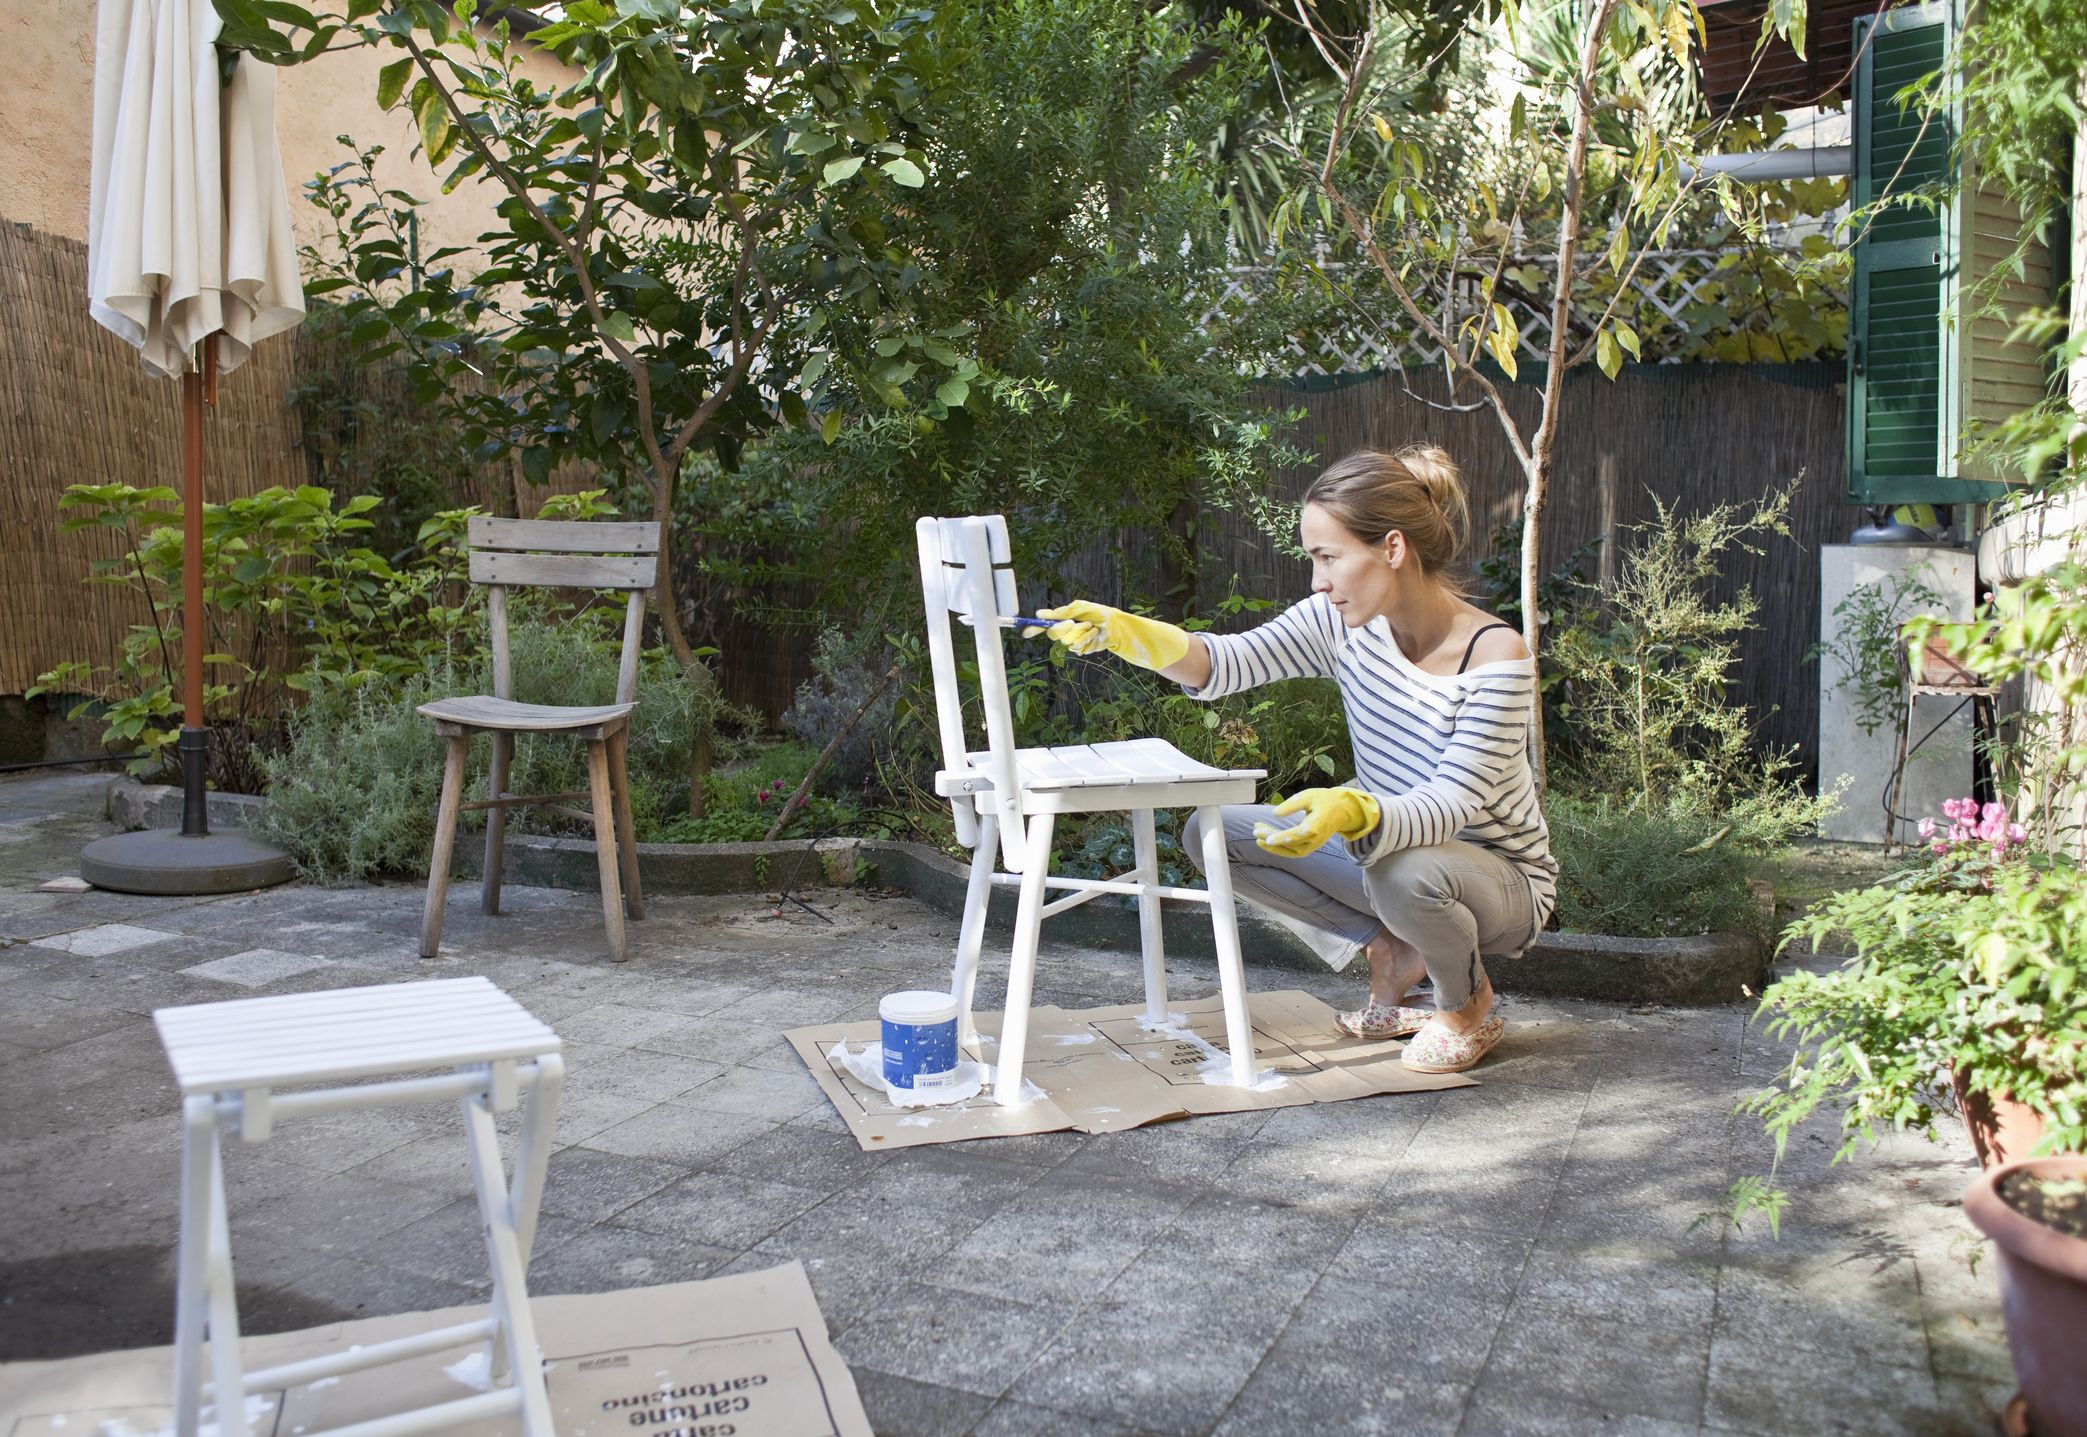 How To Paint Furniture Step By Step To Avoid Biggest Mistakes